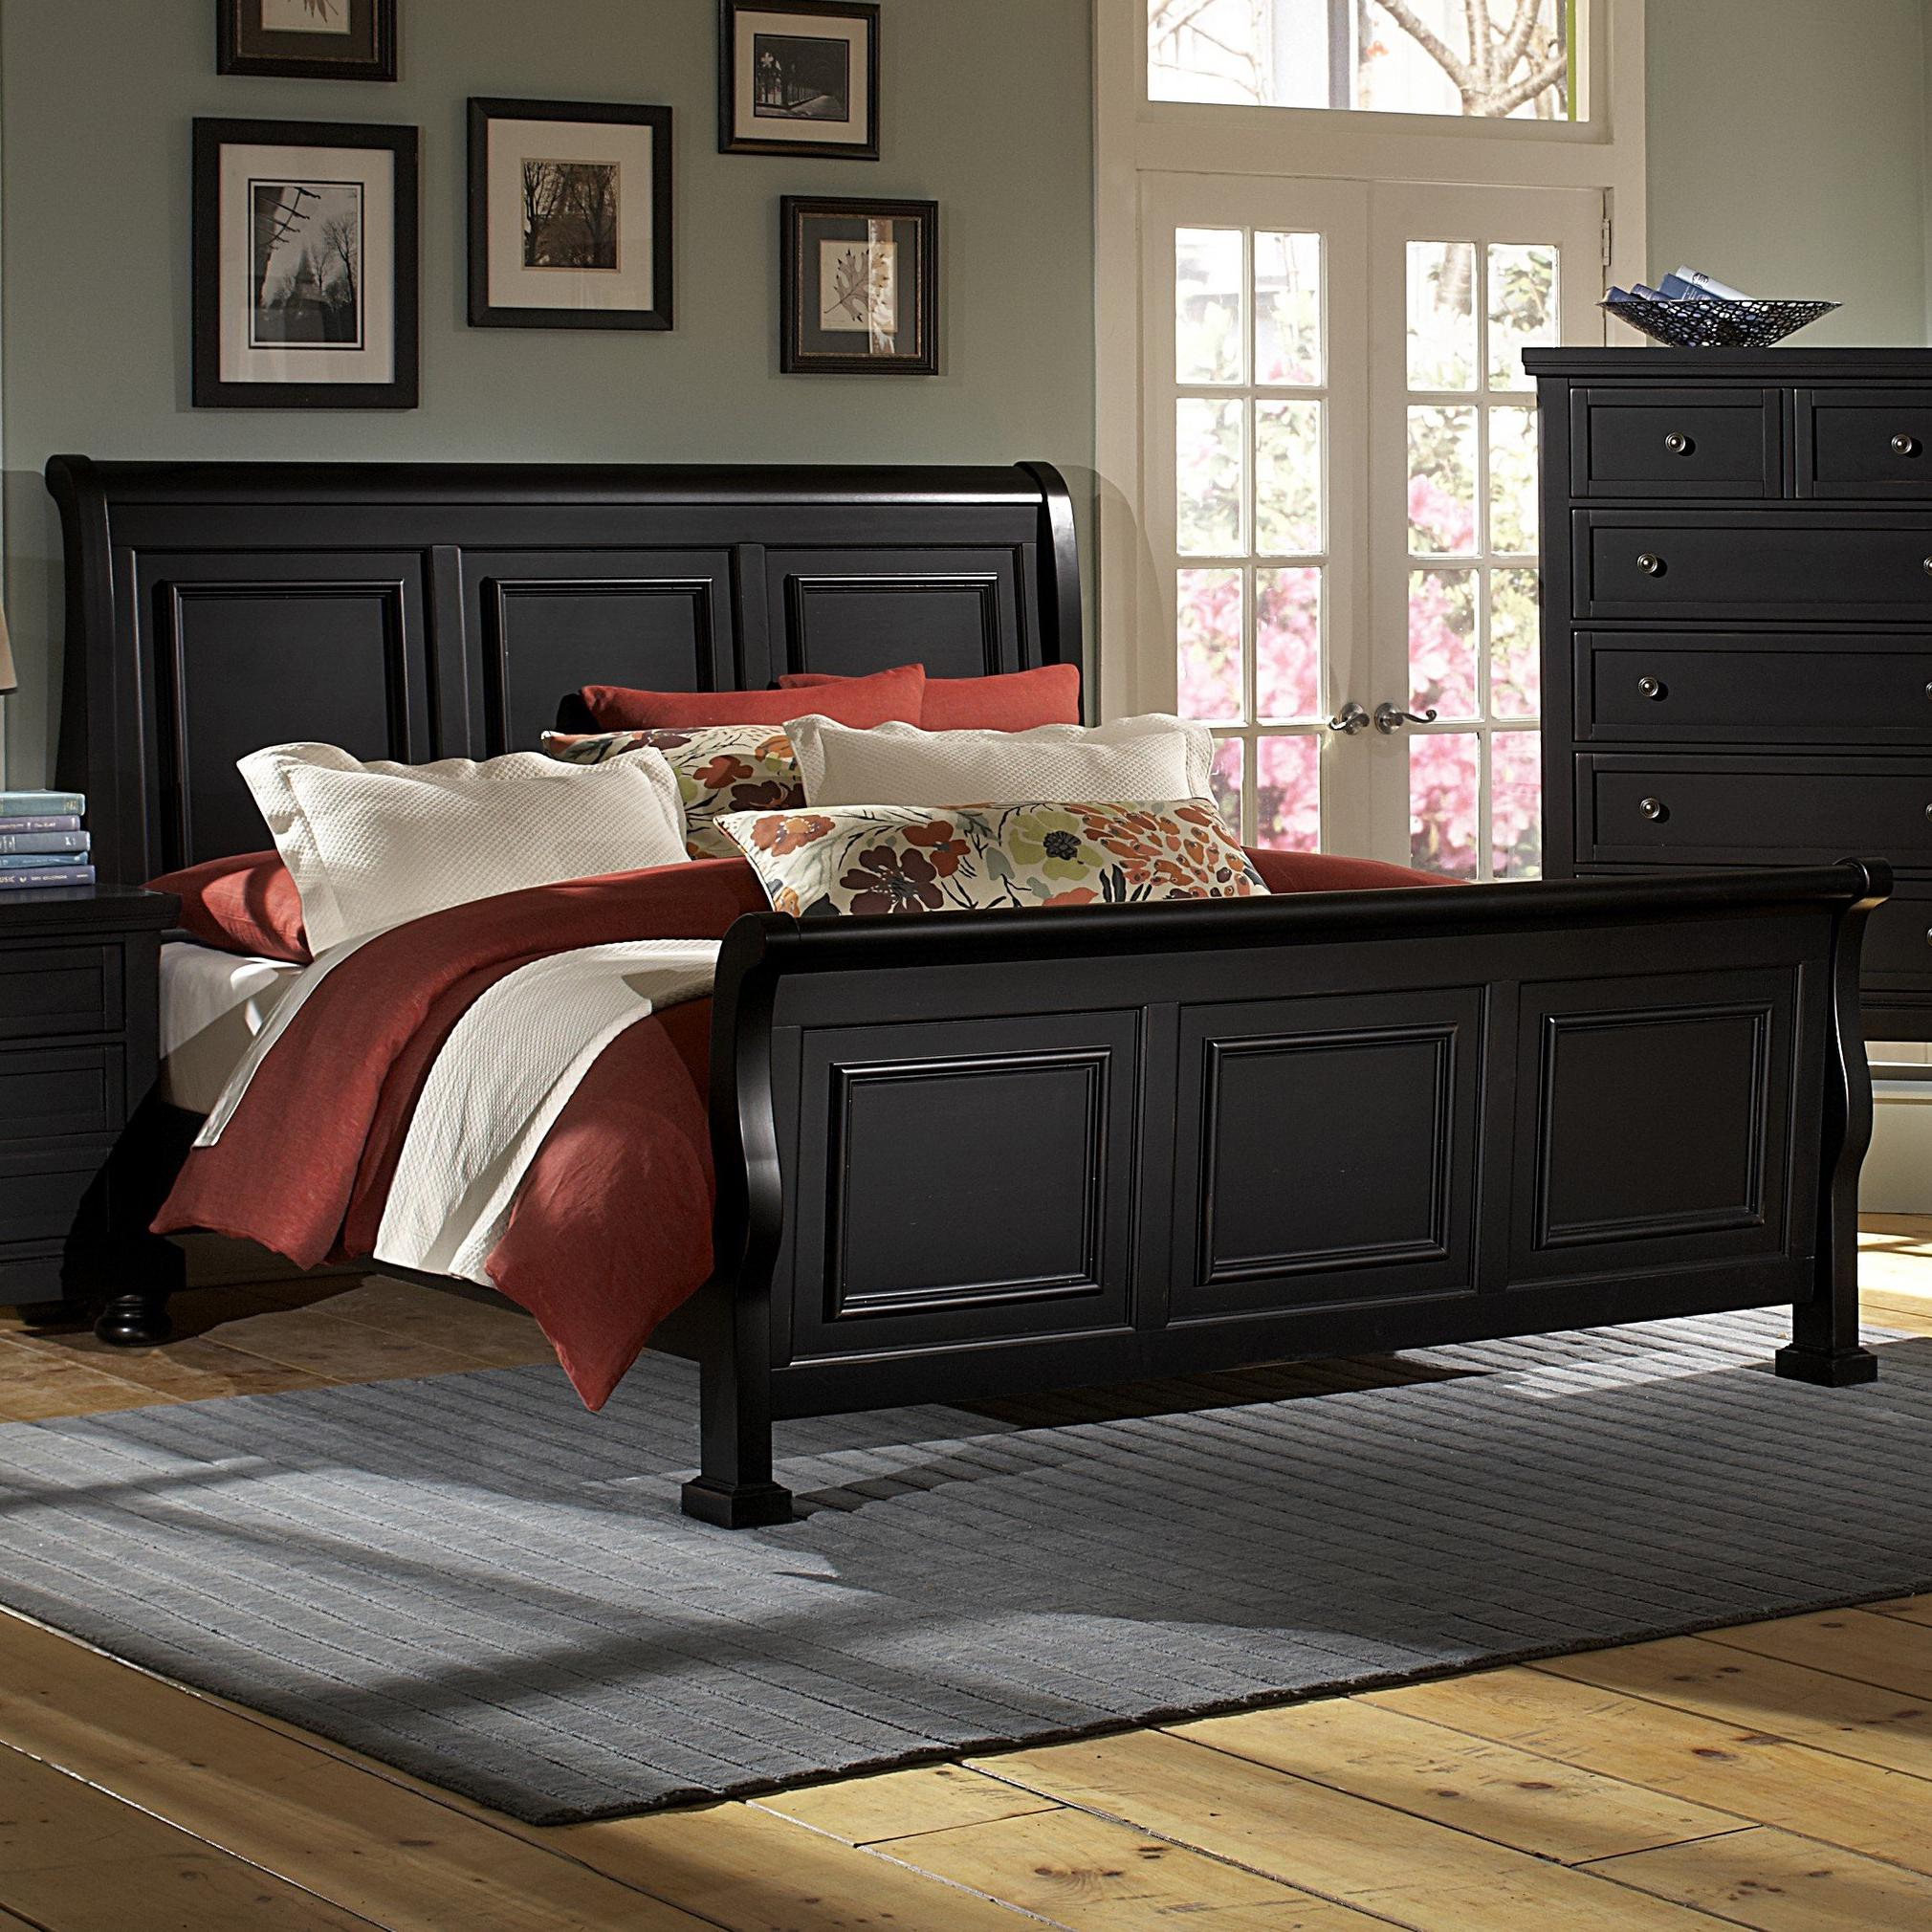 Vaughan Bassett Reflections King Sleigh Bed - Item Number: 534-663+366+722